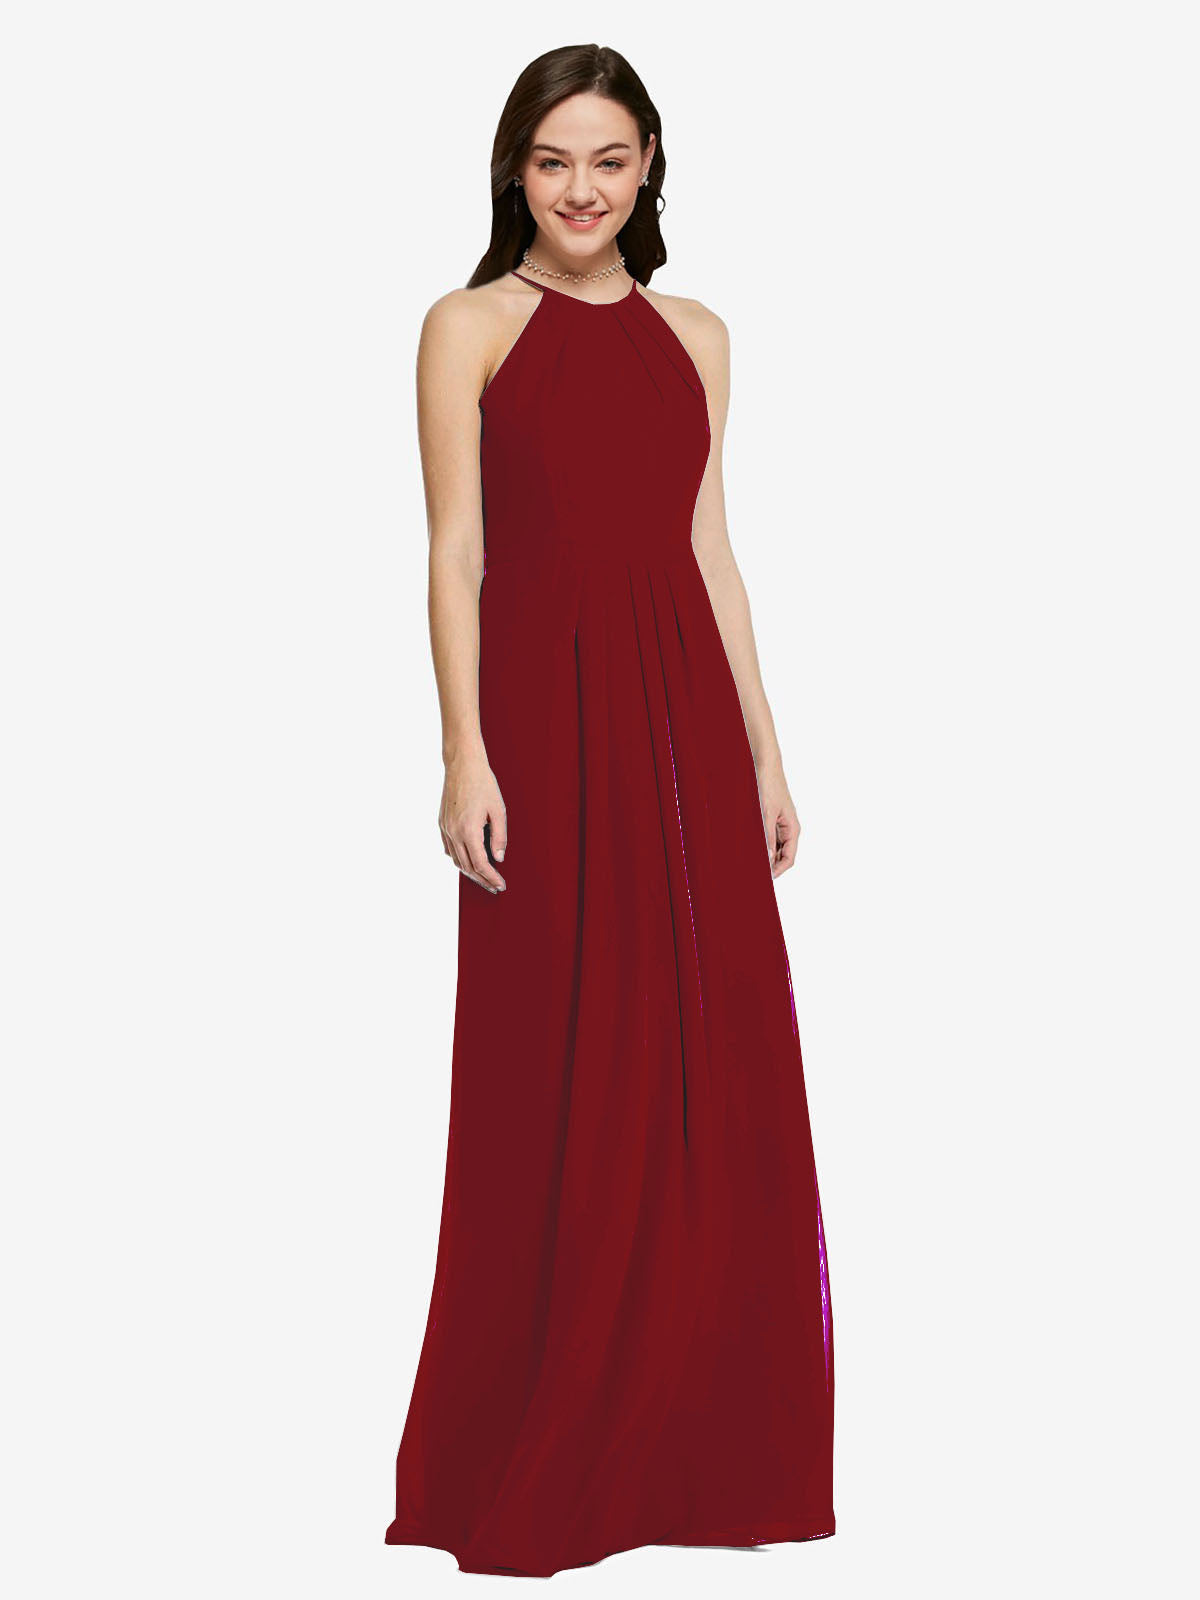 Long Sheath High Neck Halter Sleeveless Burgundy Chiffon Bridesmaid Dress Koloti